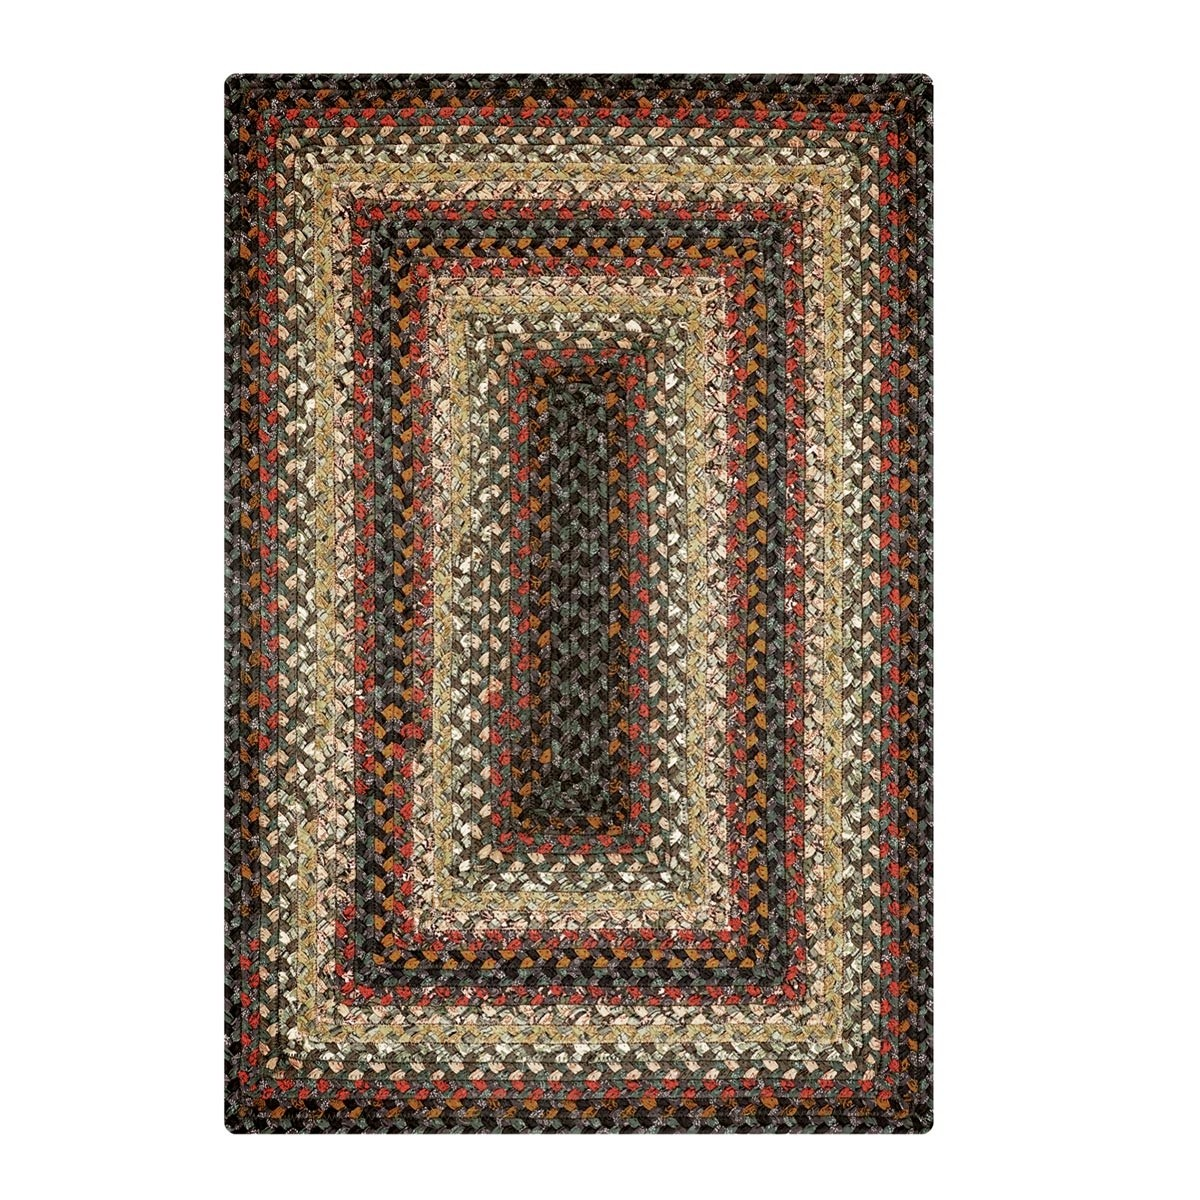 Braided Rug For Living Room: Enigma Cotton Braided Rugs